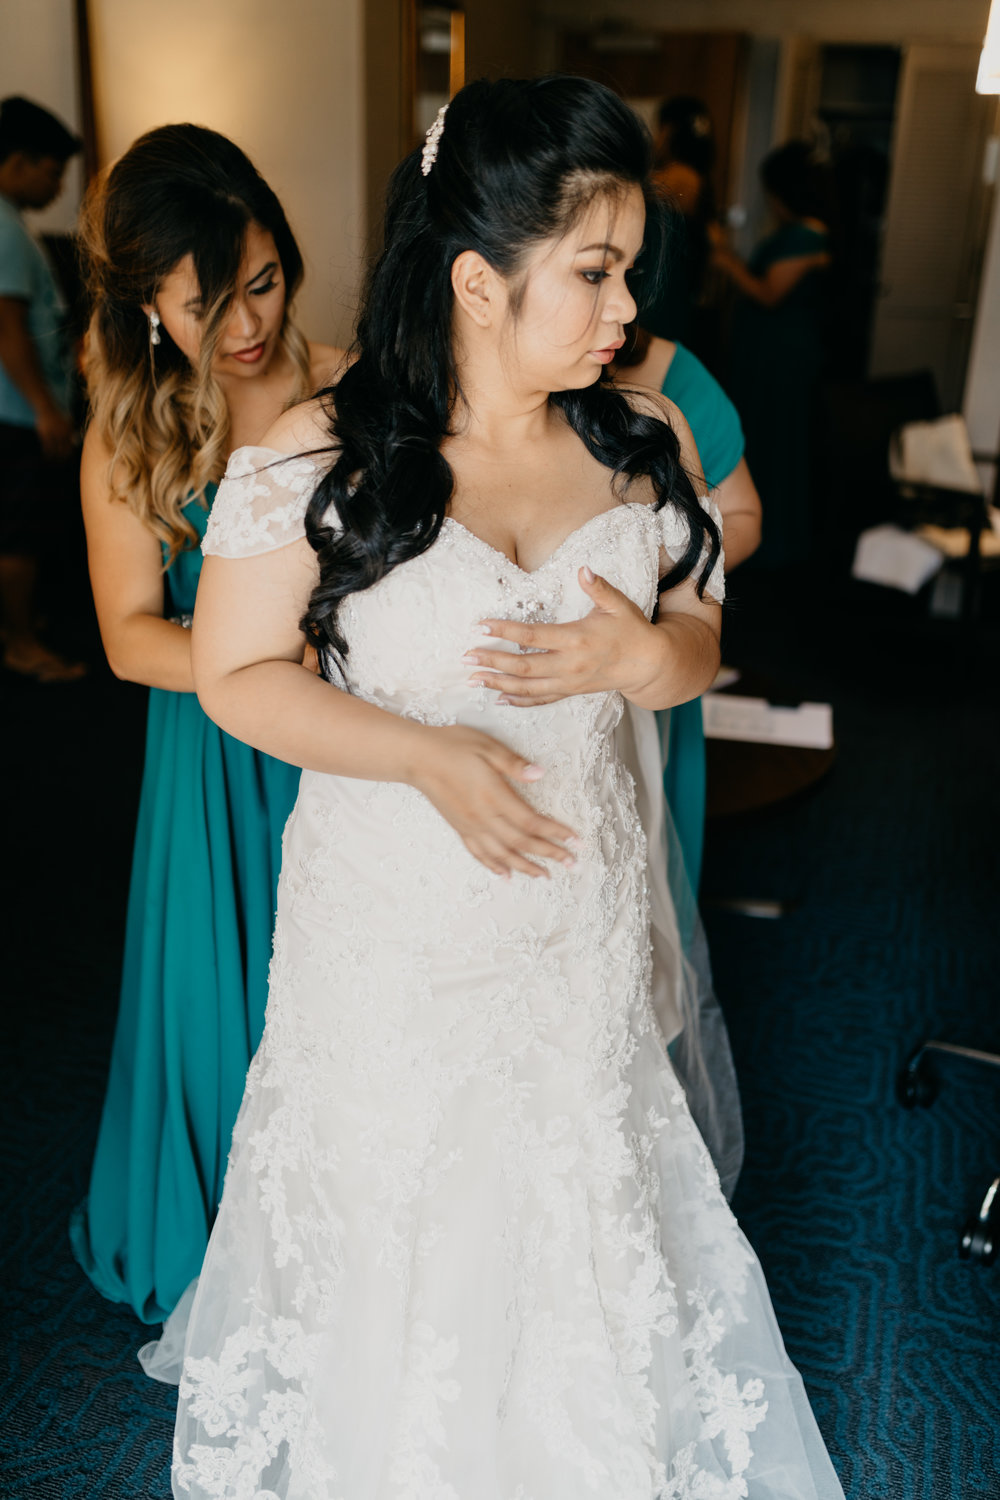 D+J_WeddingPhotos_09092018-82.JPG